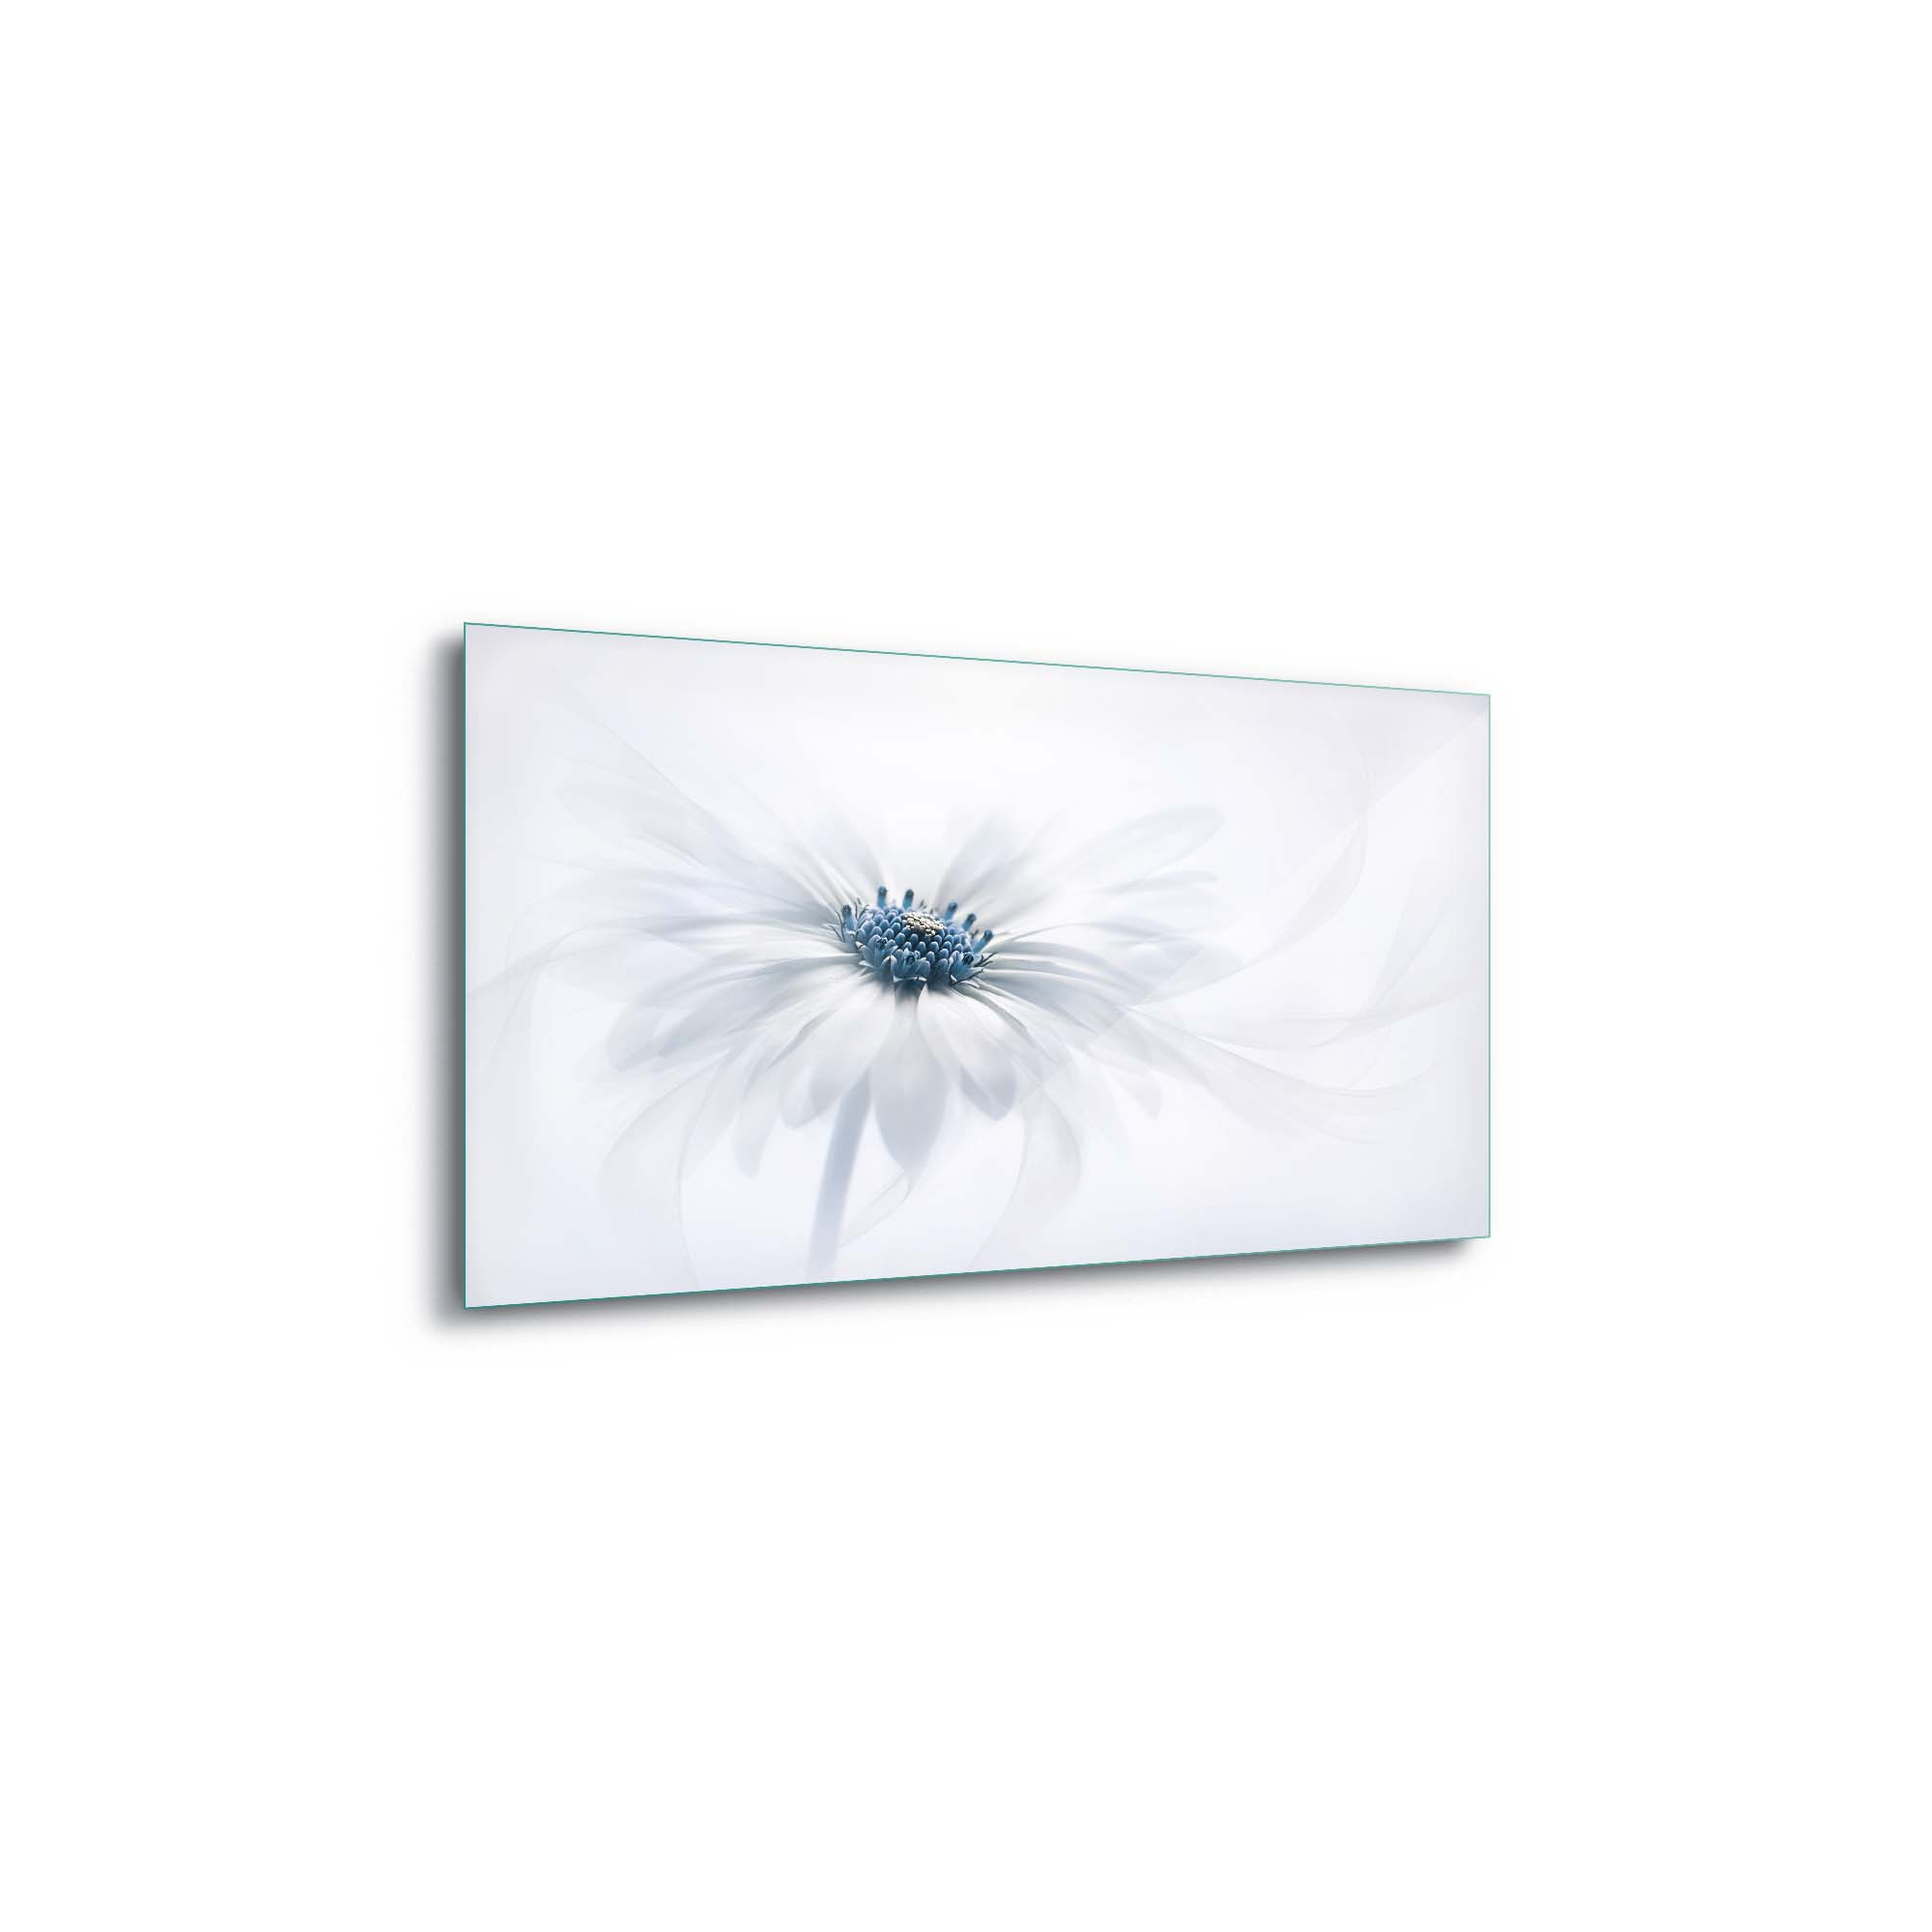 Glass printed White Flower in Background